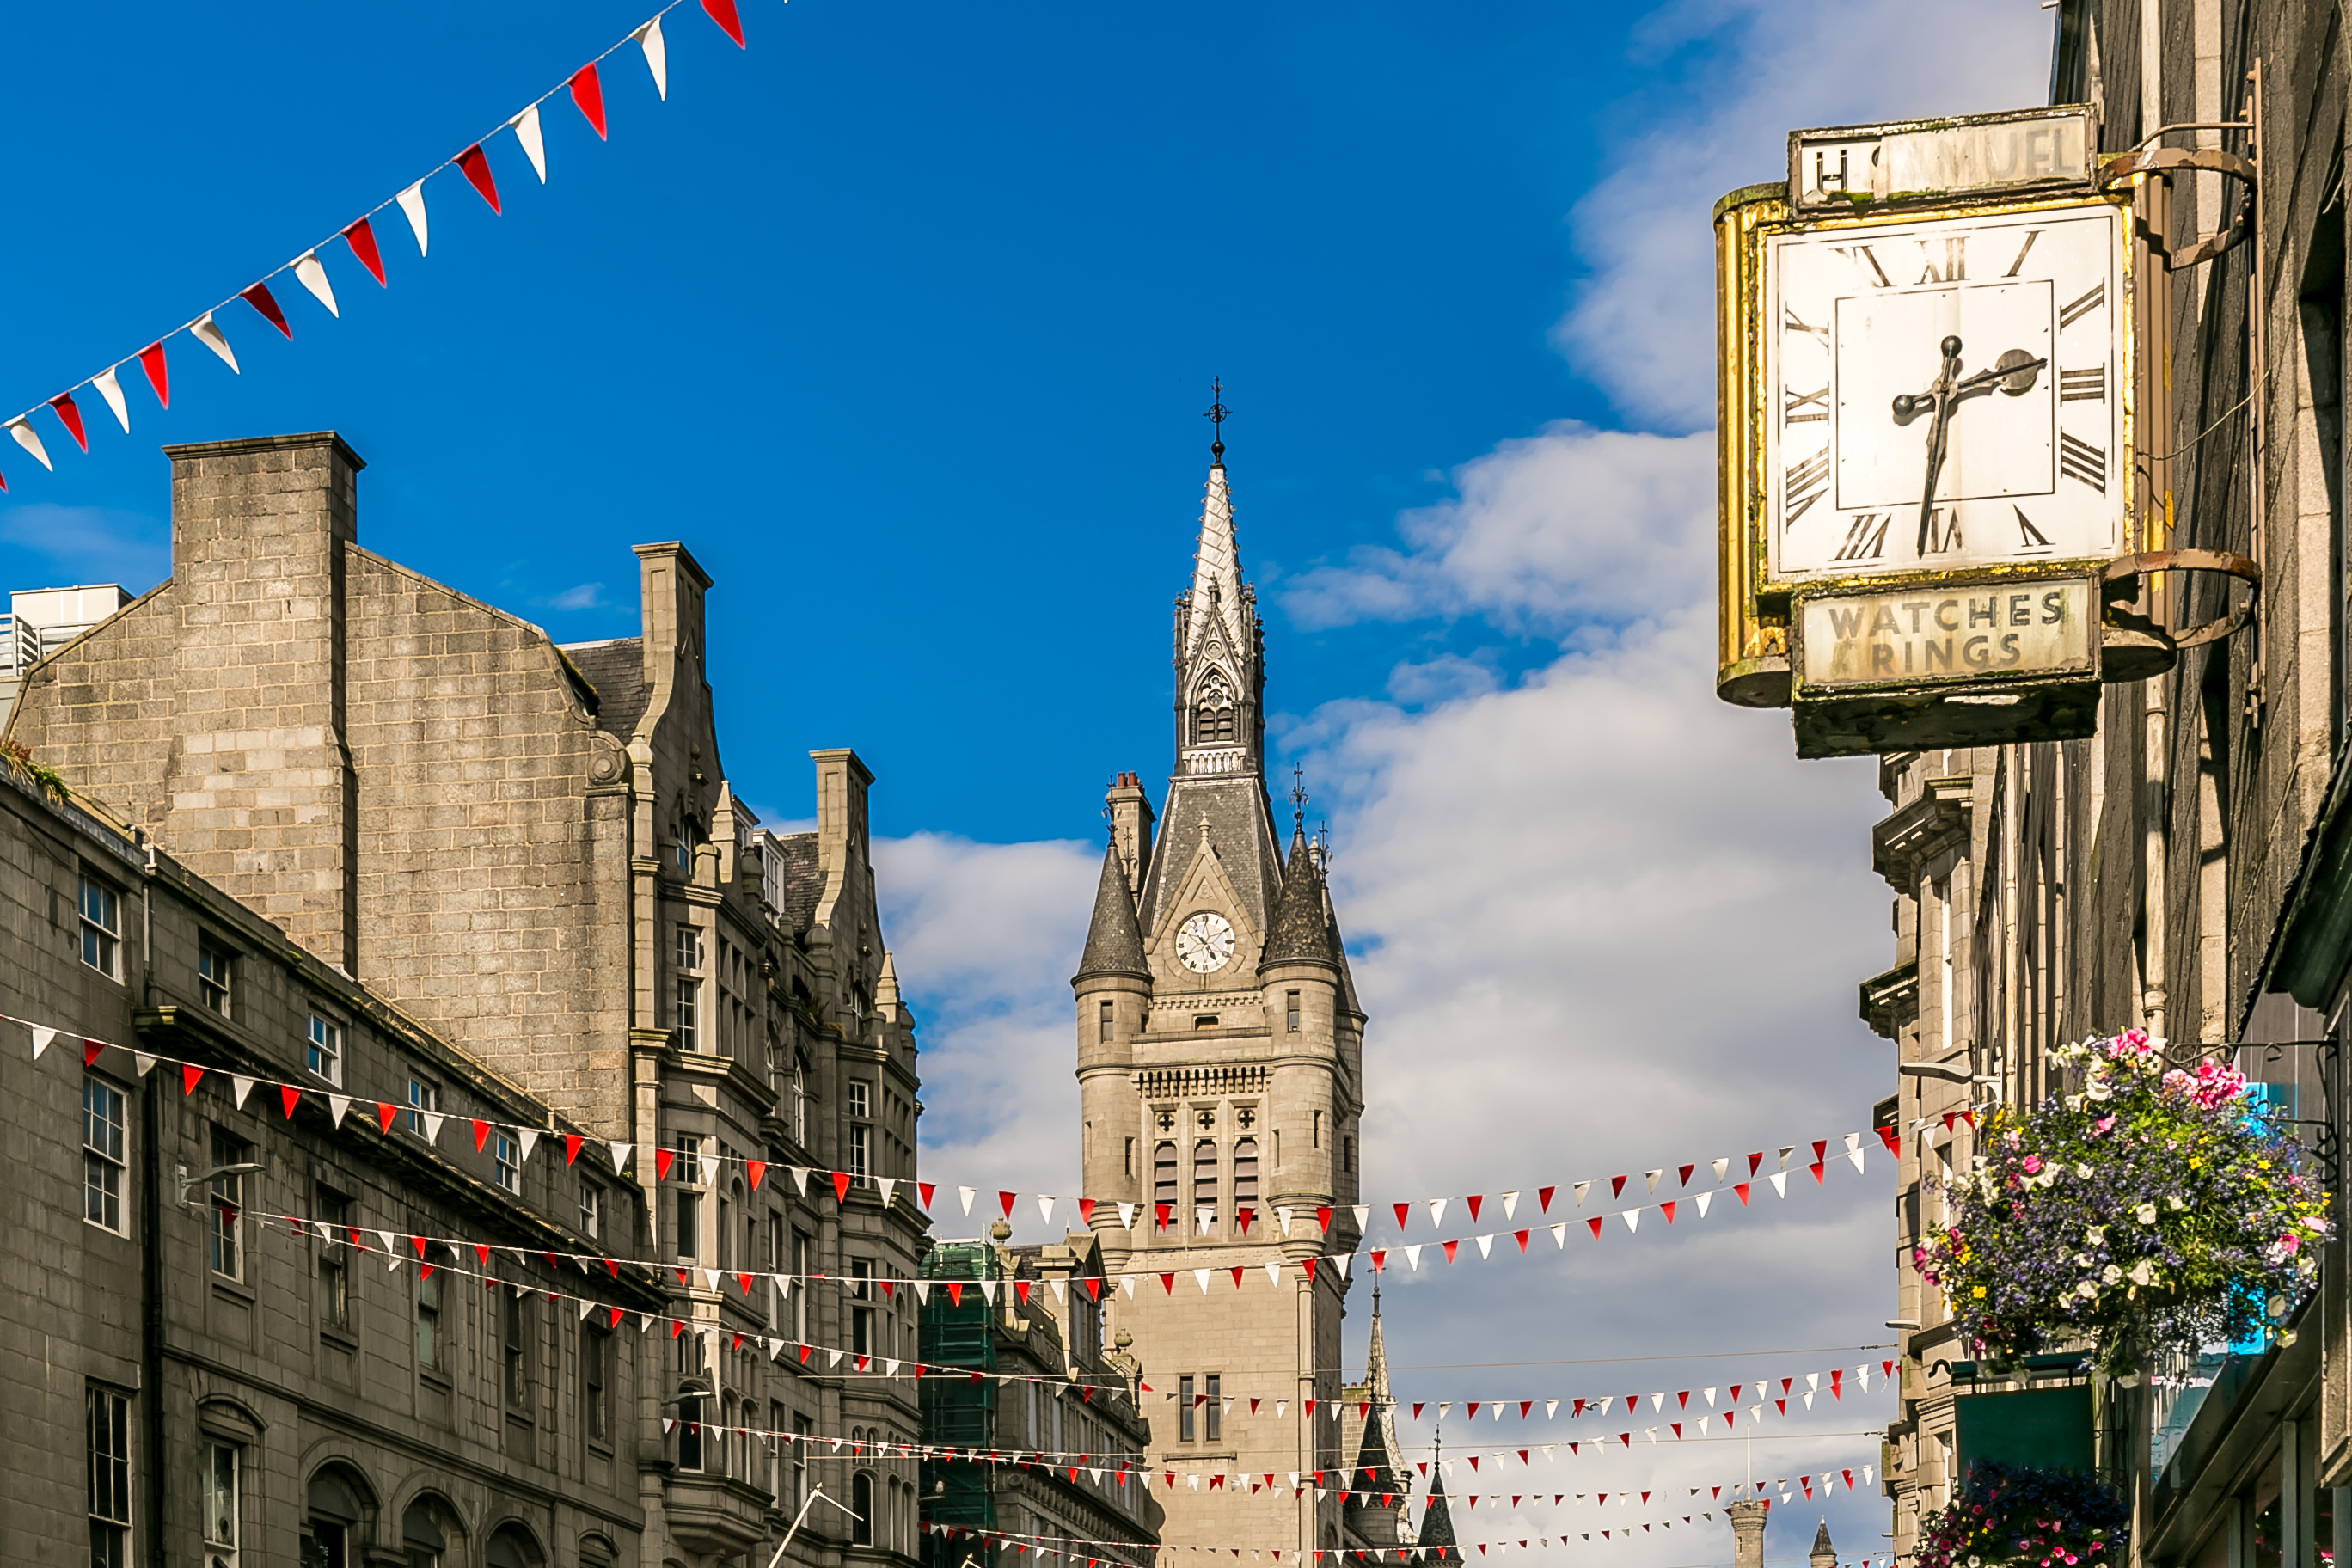 A tall pointed building on the left and a clock on the right in a sunny Aberdeen.